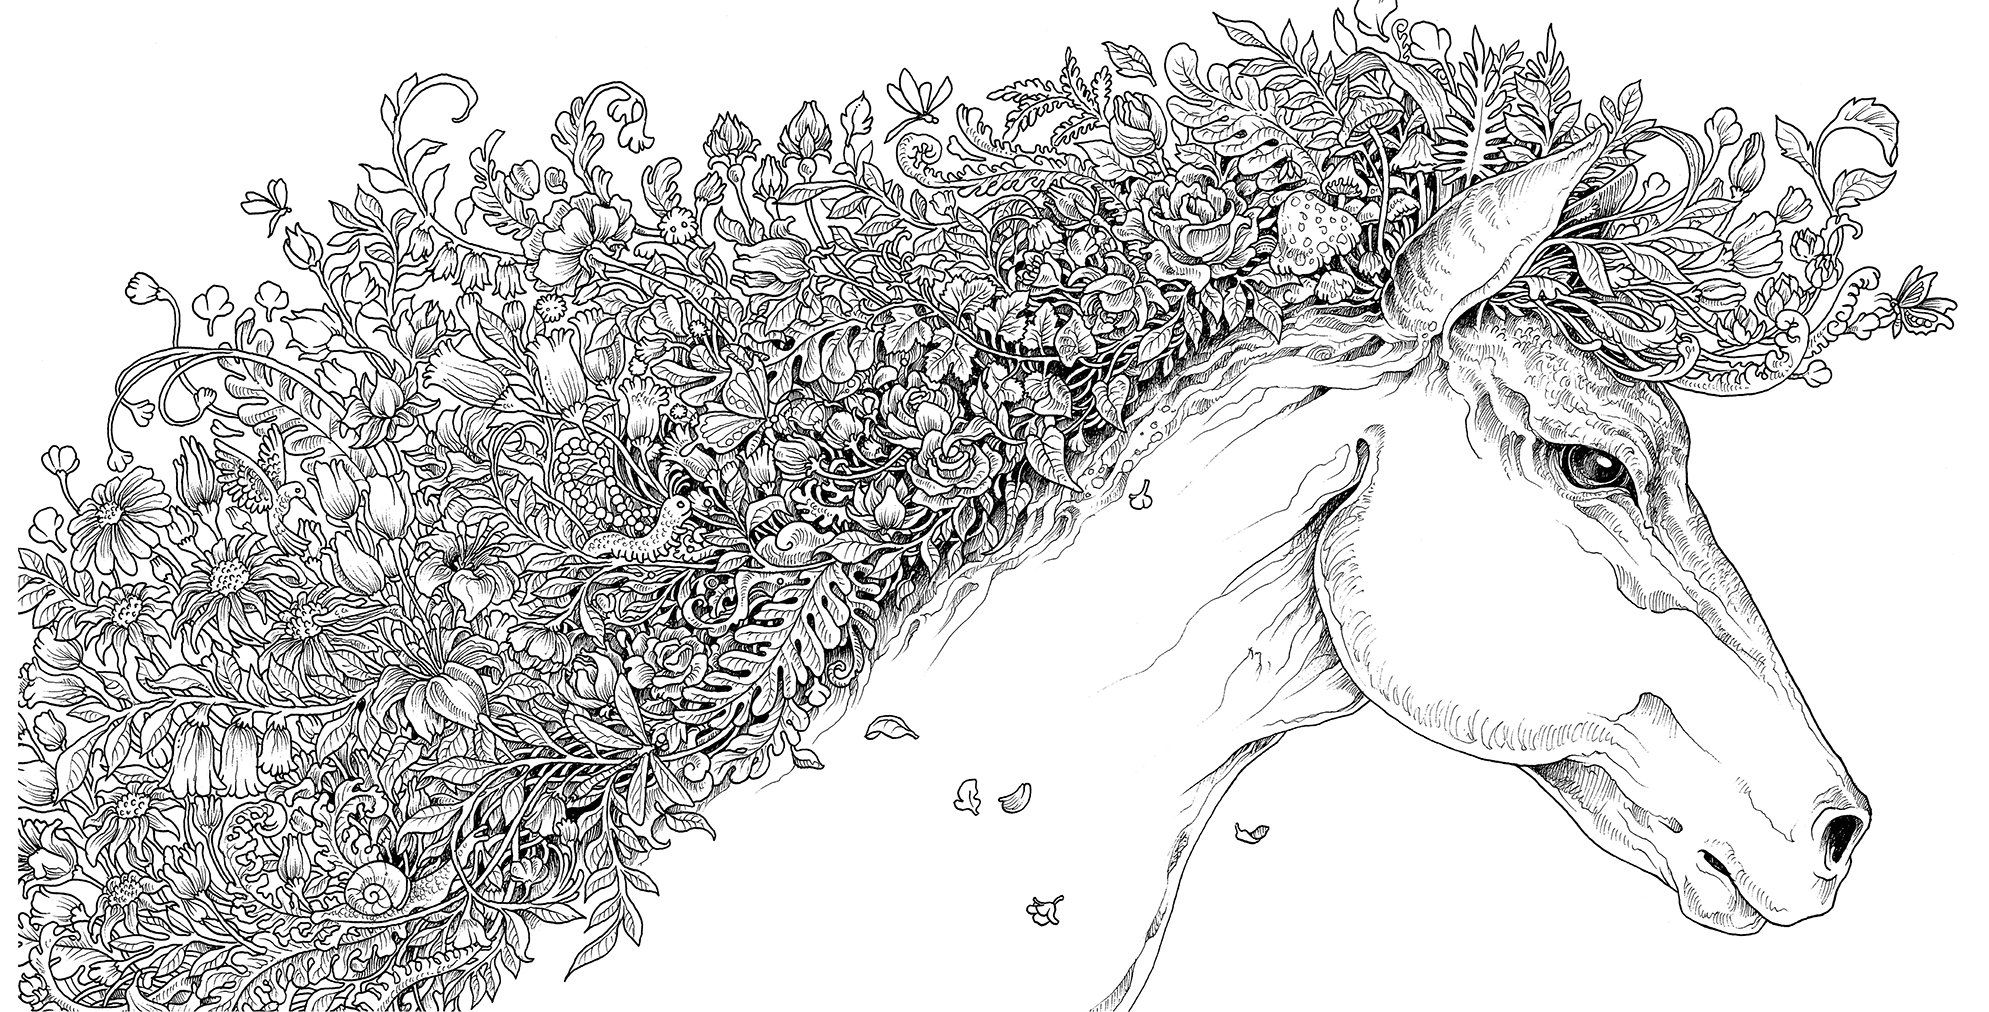 extreme coloring pages imagimorphia an extreme coloring and search challenge coloring pages extreme